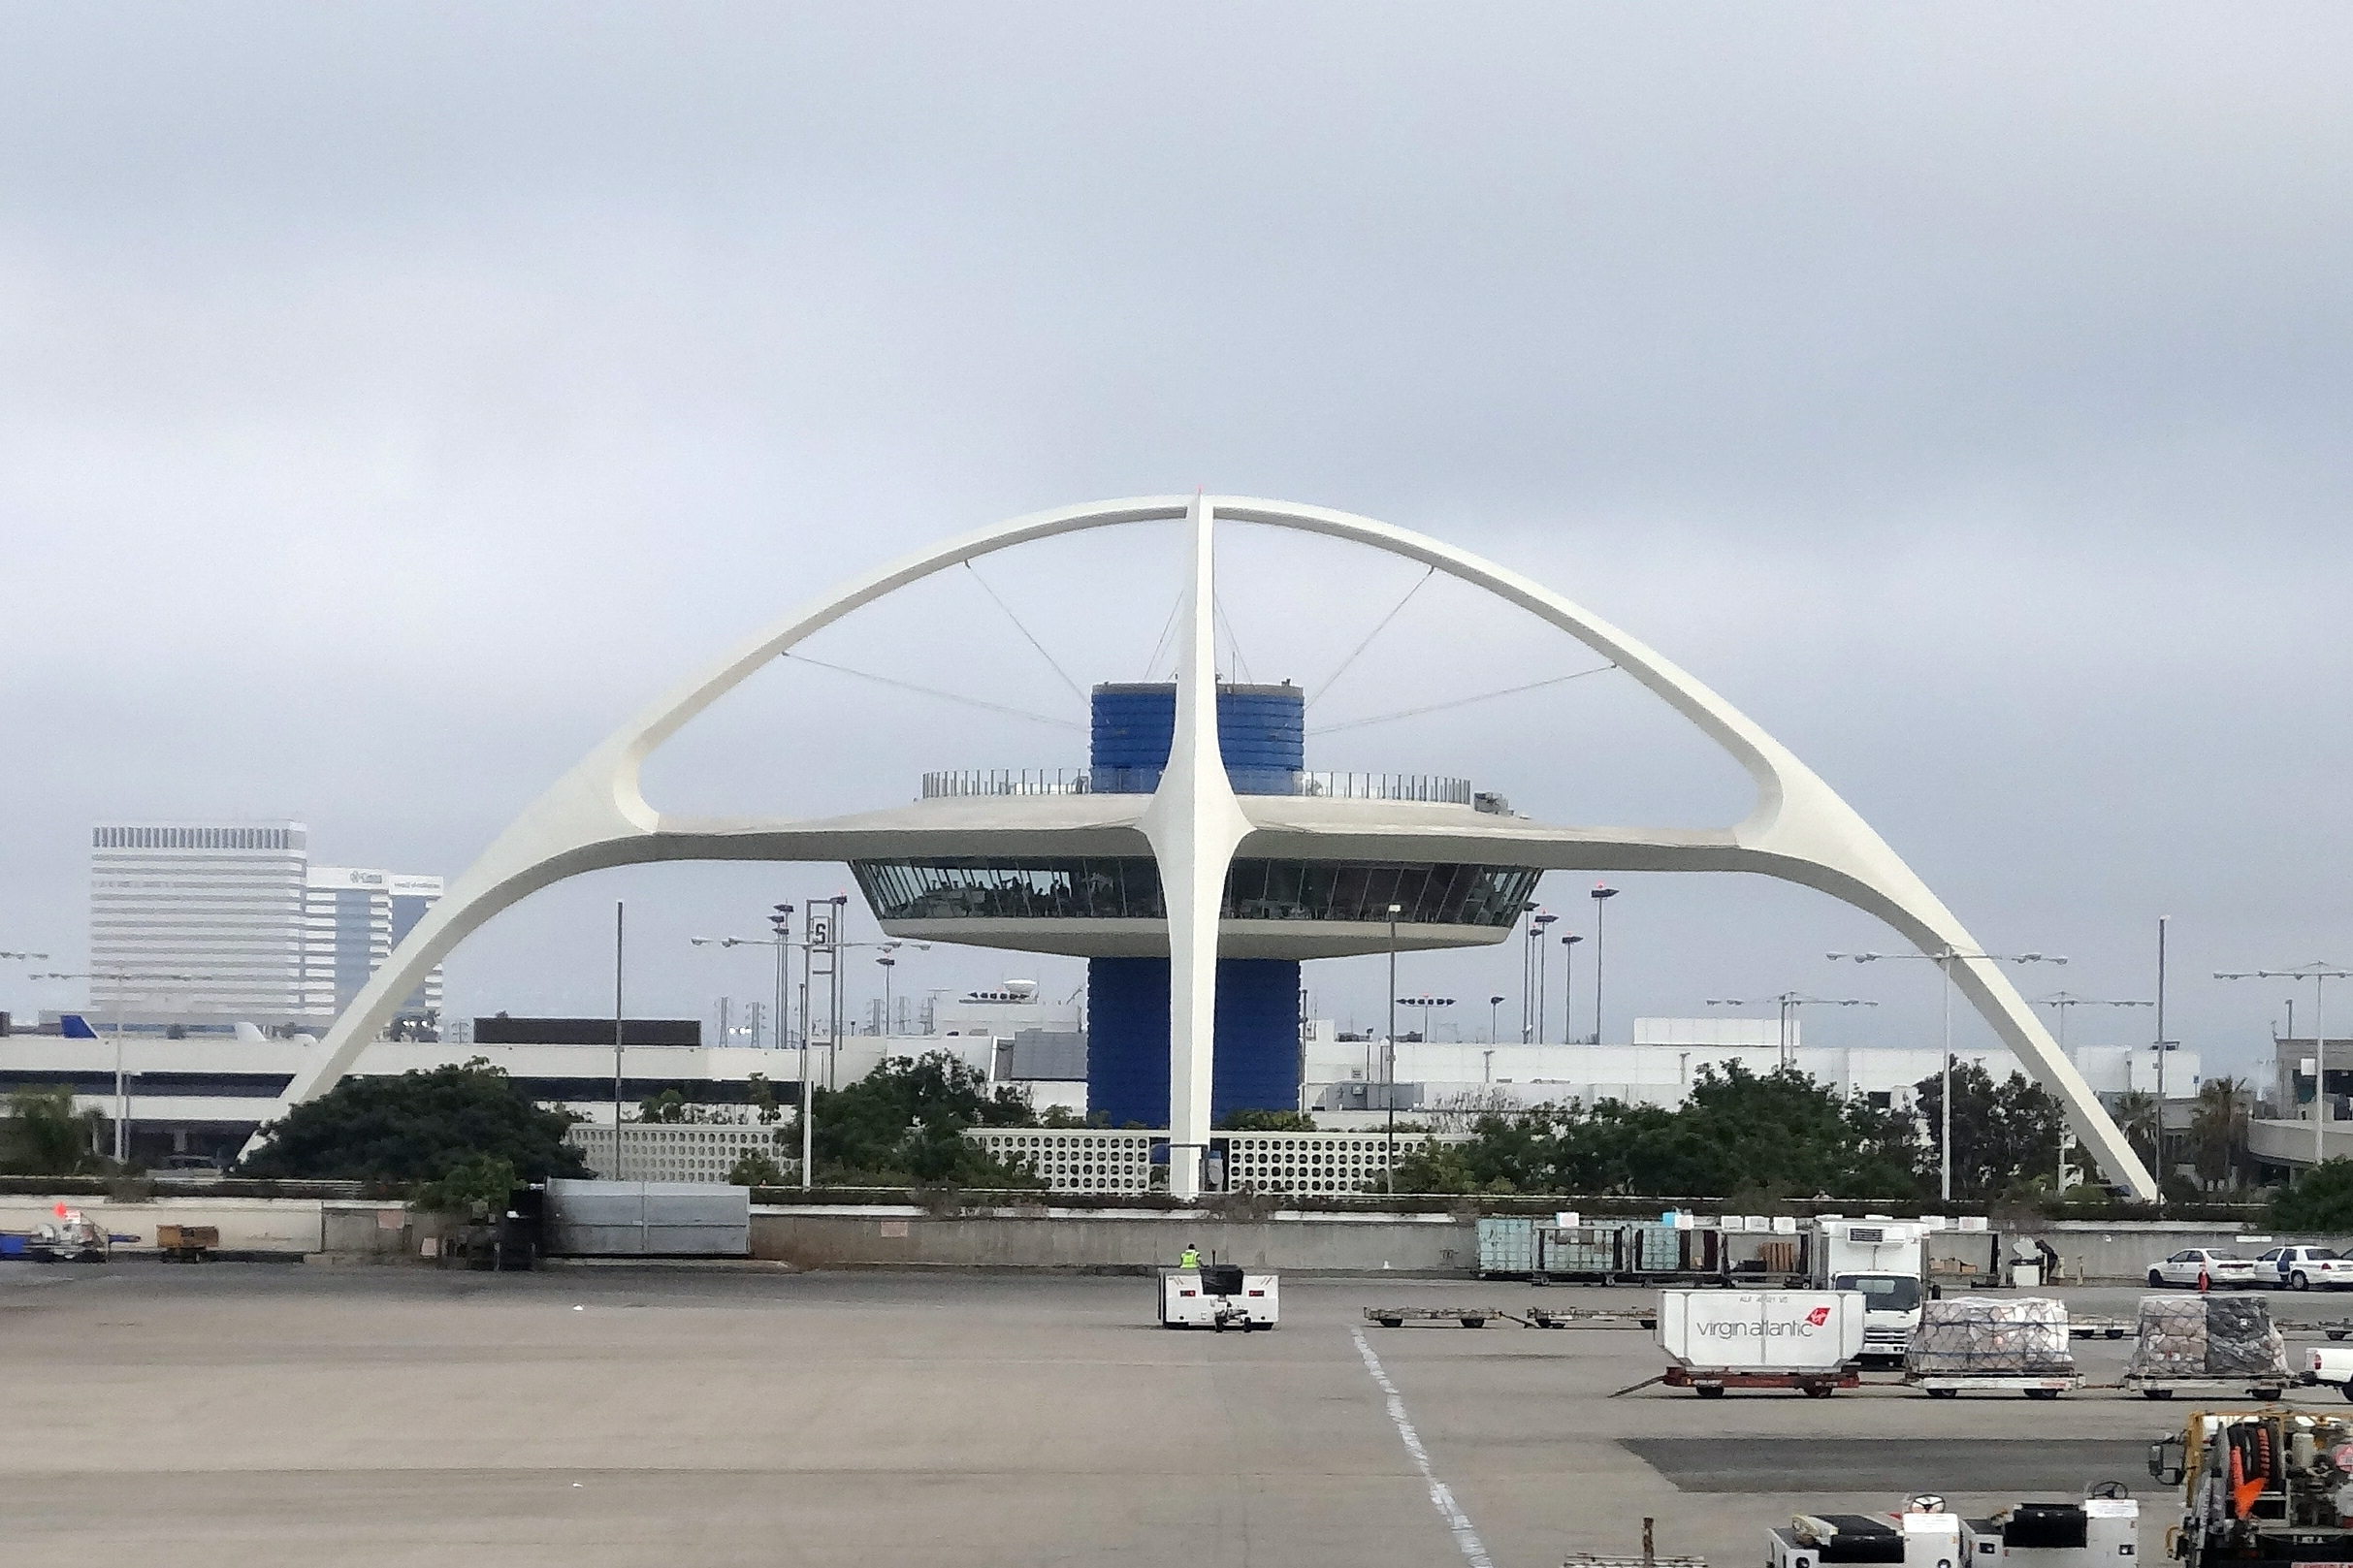 File:Theme building LAX AIRPORT (10629344455).jpg - Wikimedia Commons